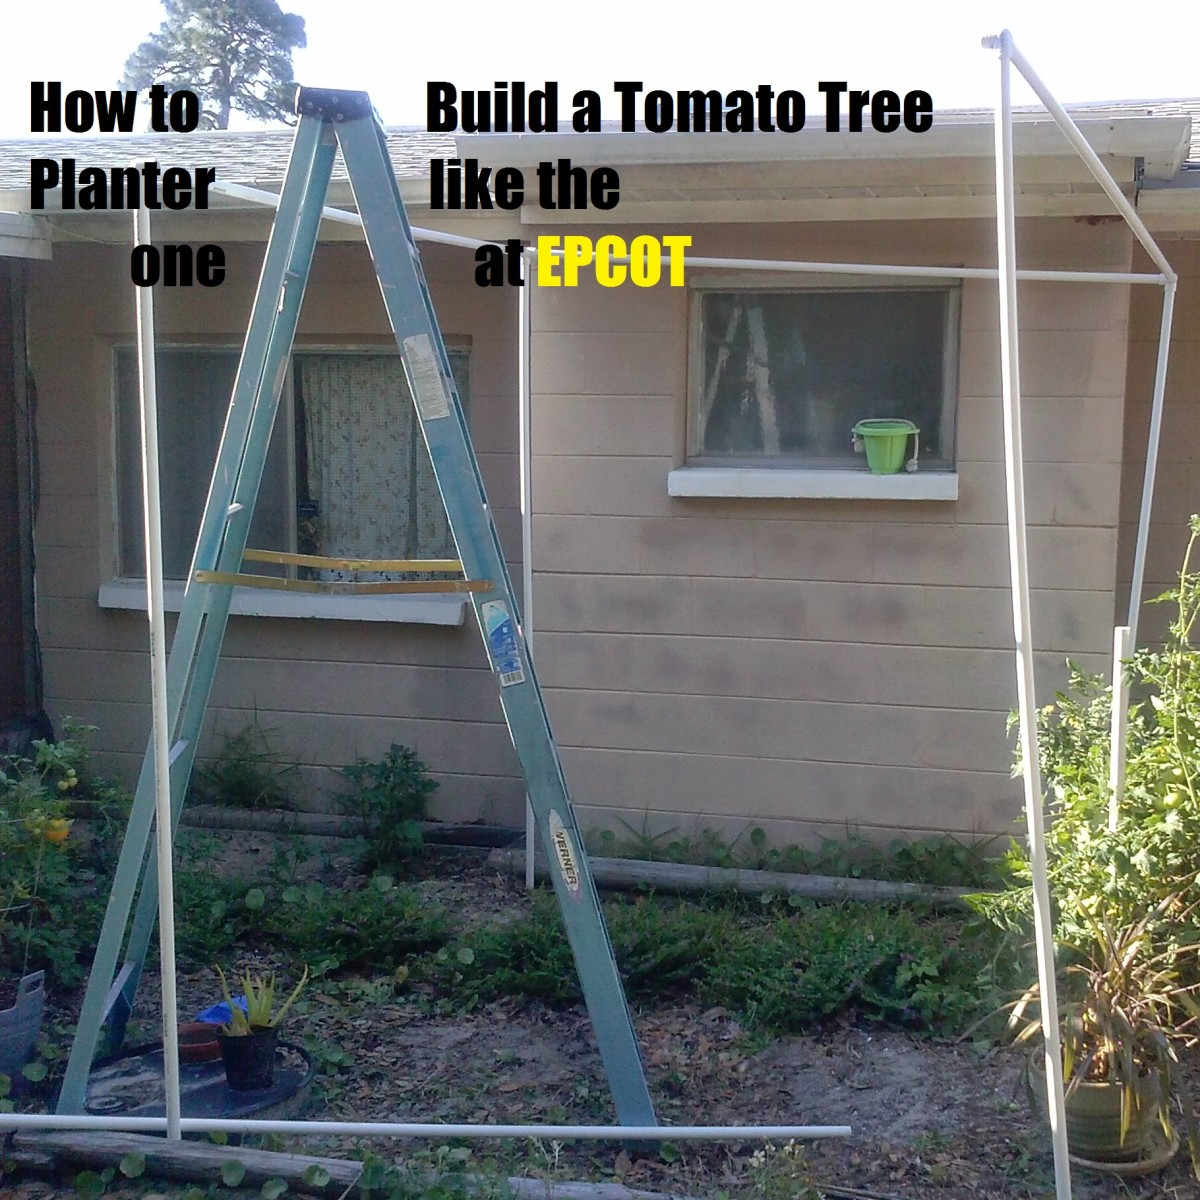 How to Build a Tomato Tree Plant Like Disney World's Epcot Ride